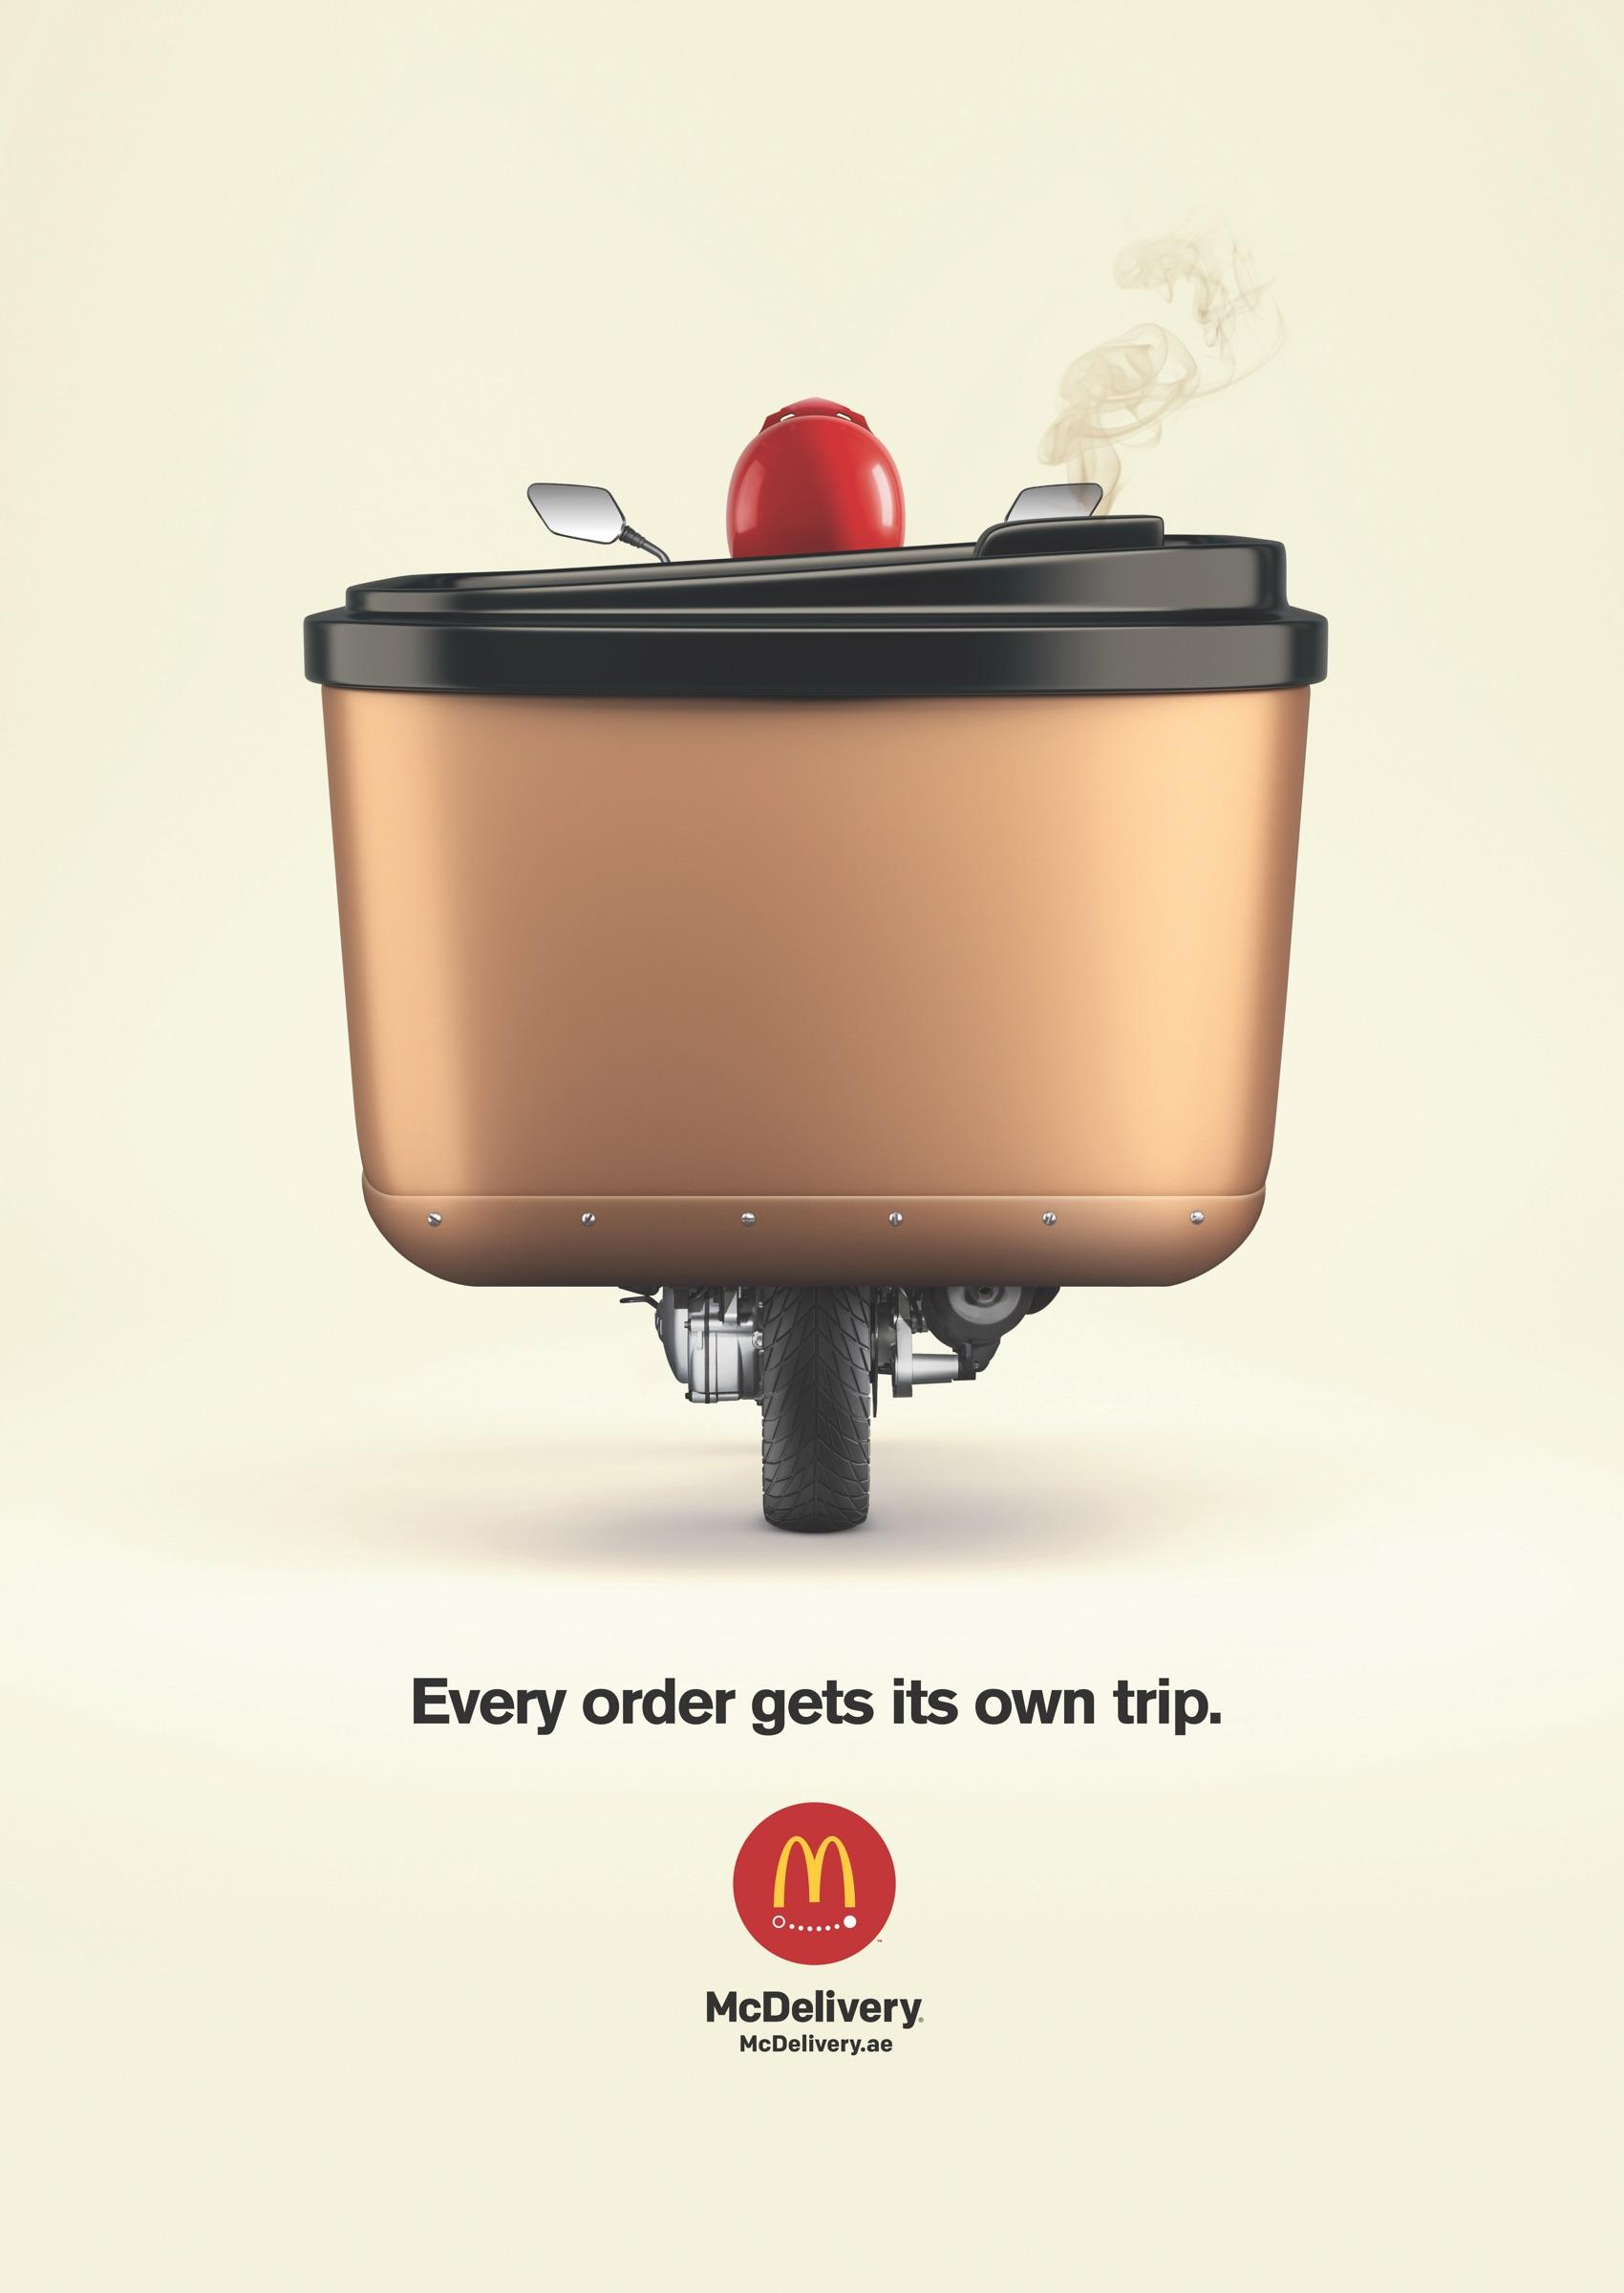 McDonald's Print Ad - Every Order Get It's Own Trip - Coffee